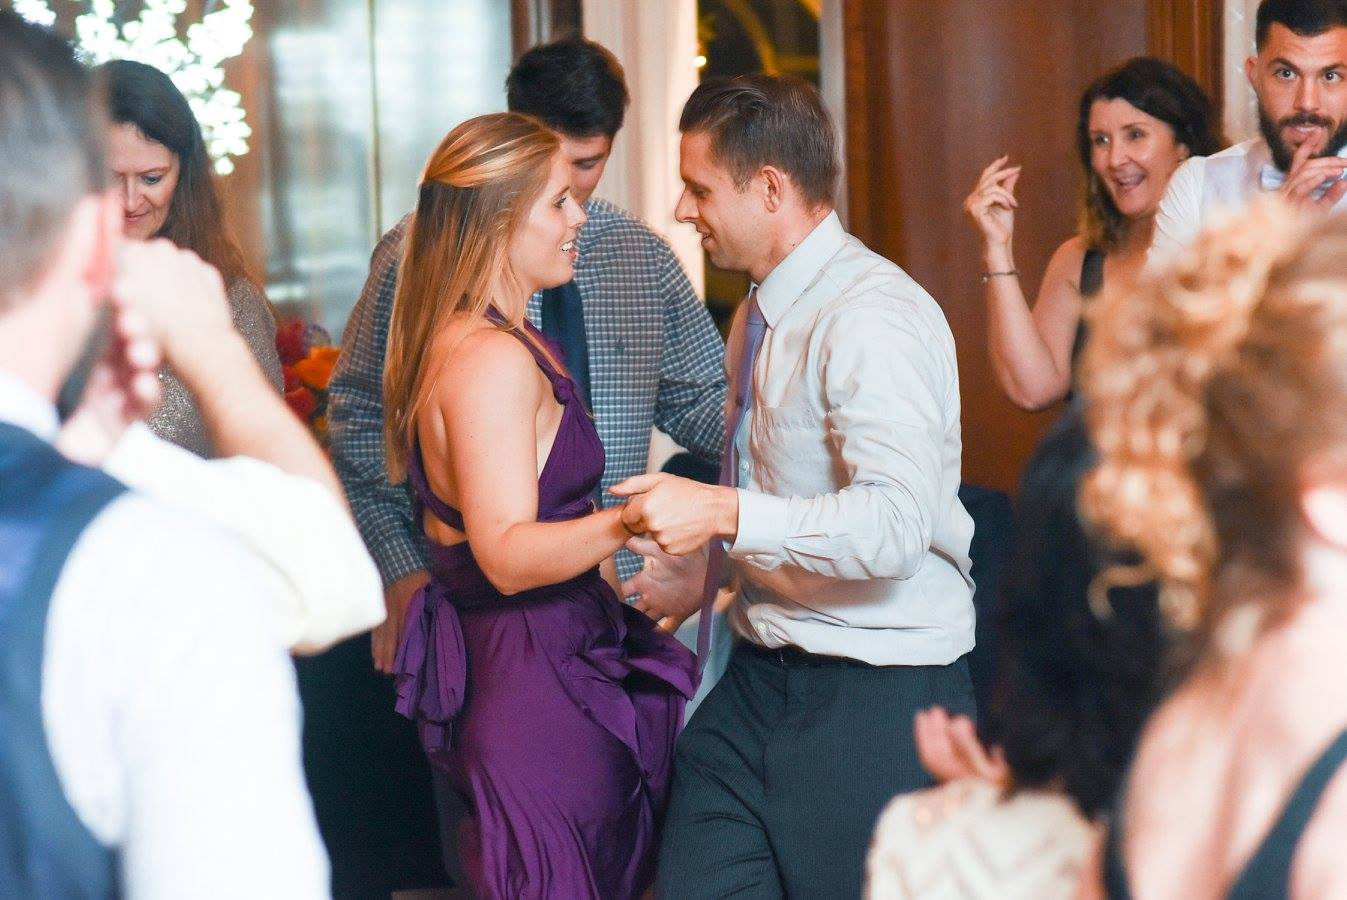 bridesmaid and man dance together